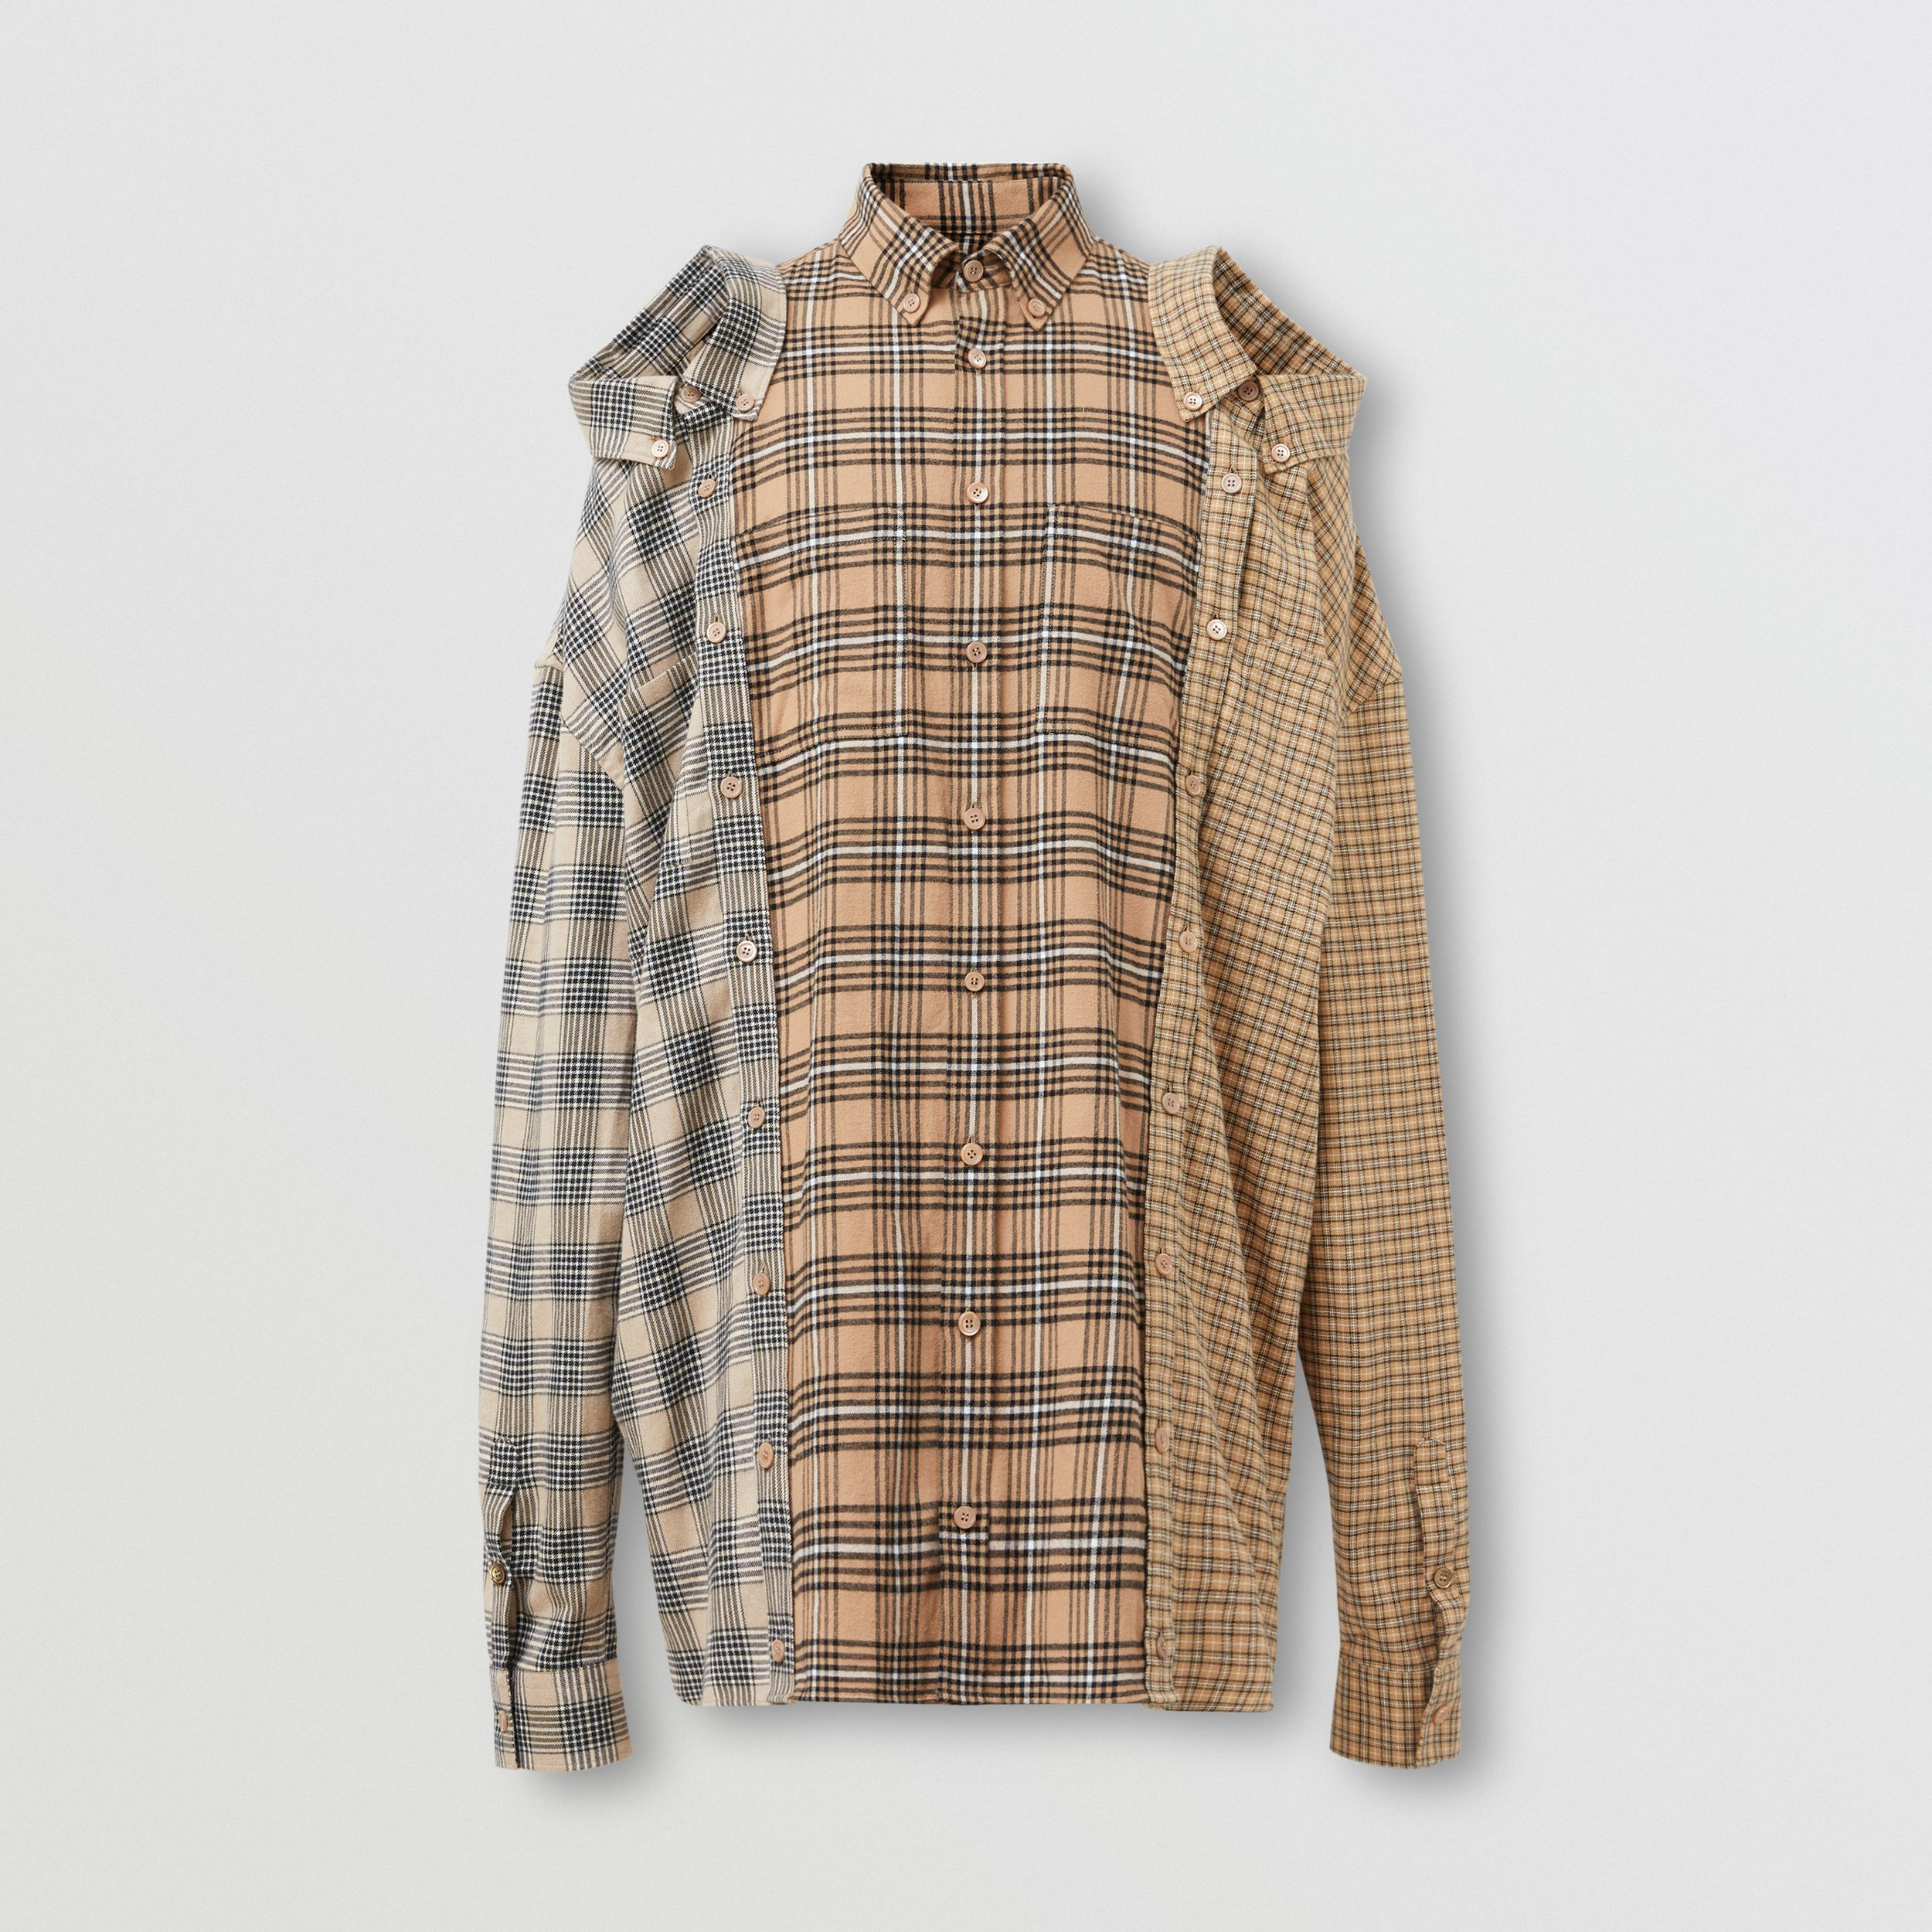 Contrast Check Cotton Flannel Reconstructed Shirt in Camel | Burberry - 4